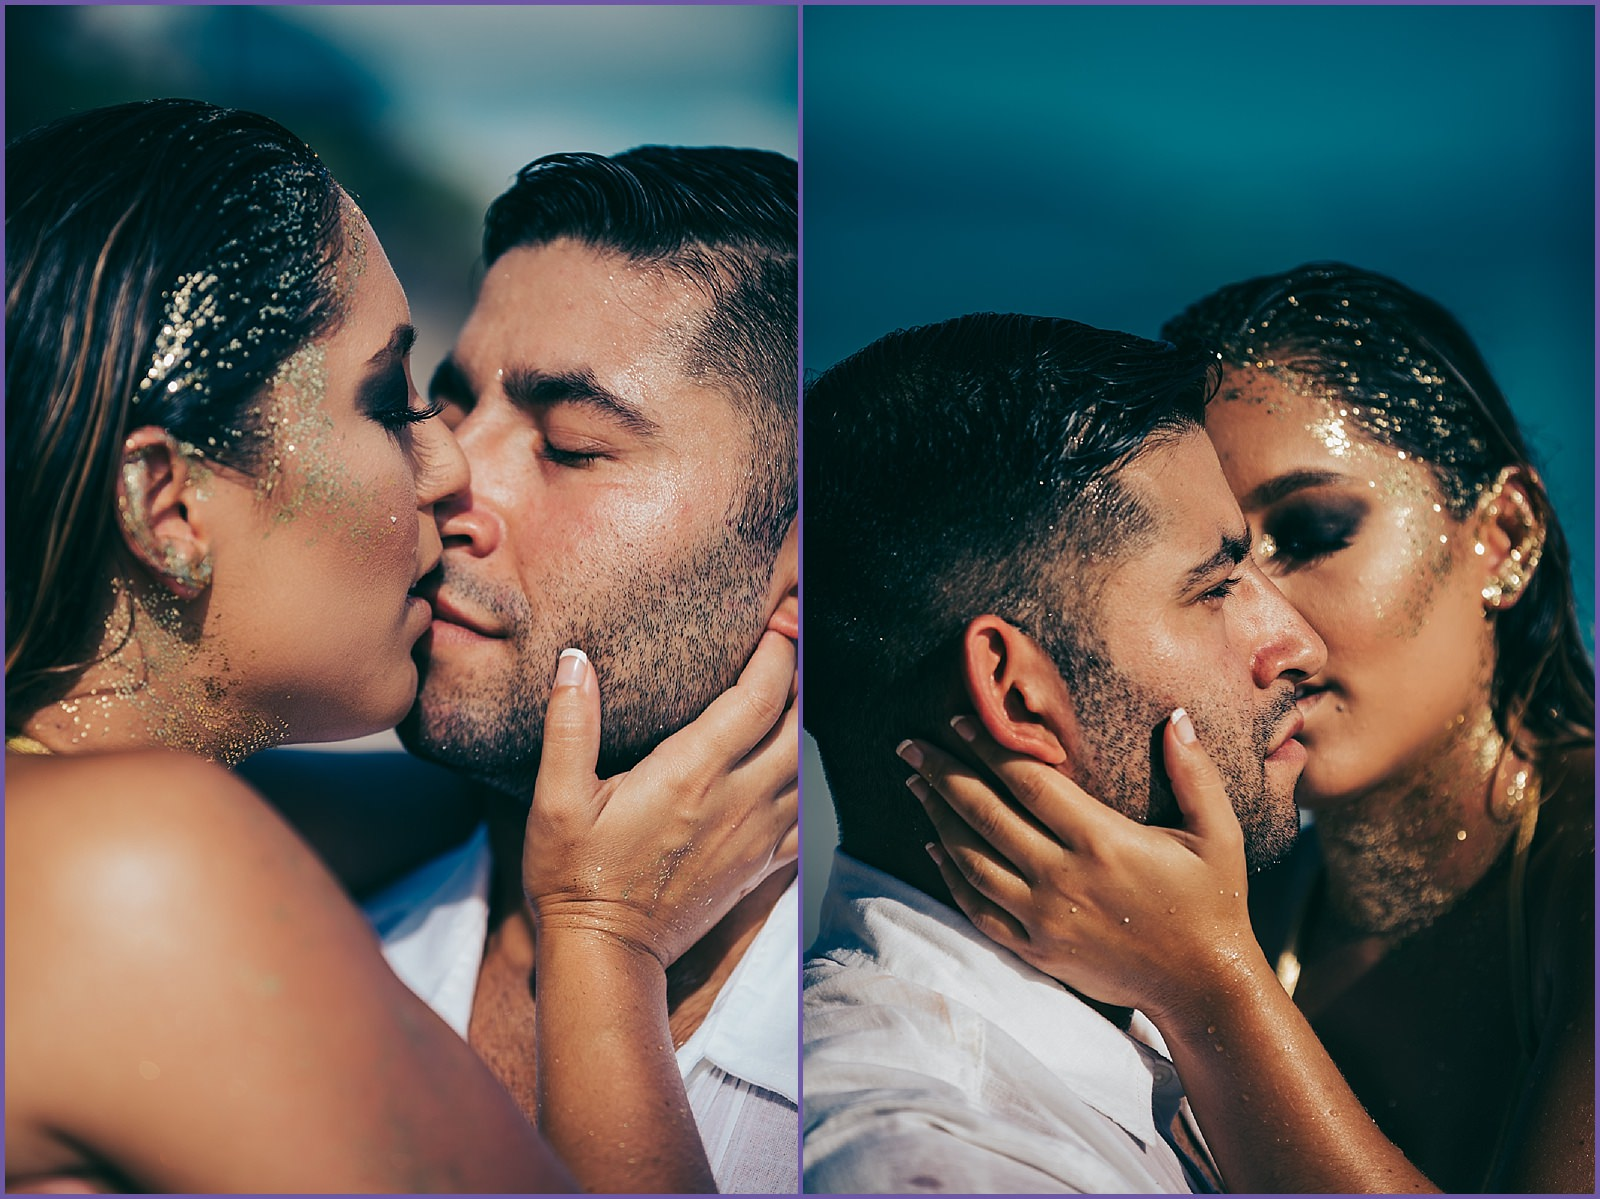 Couple Glamour photography - waimanalo beach, honolulu, hawaii photographer - ketino photography - hawaii family and glamour photographer - sarai espinoza mua double.jpg